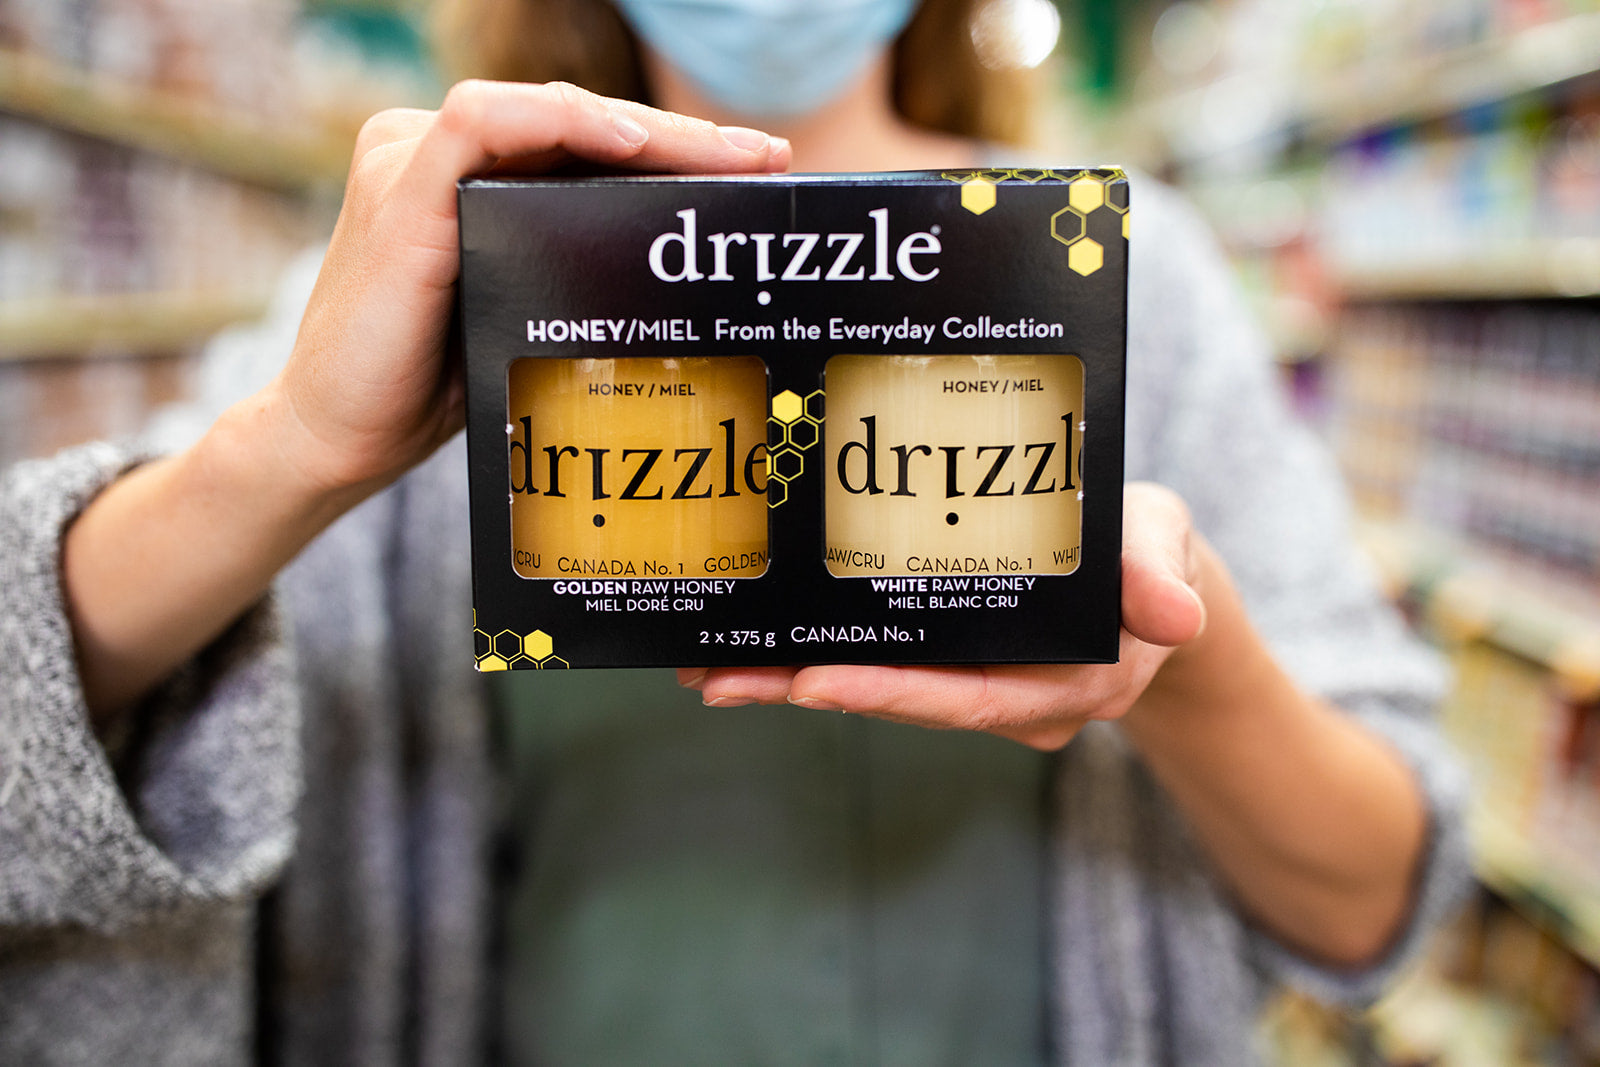 Drizzle Honey Everyday Collection Box